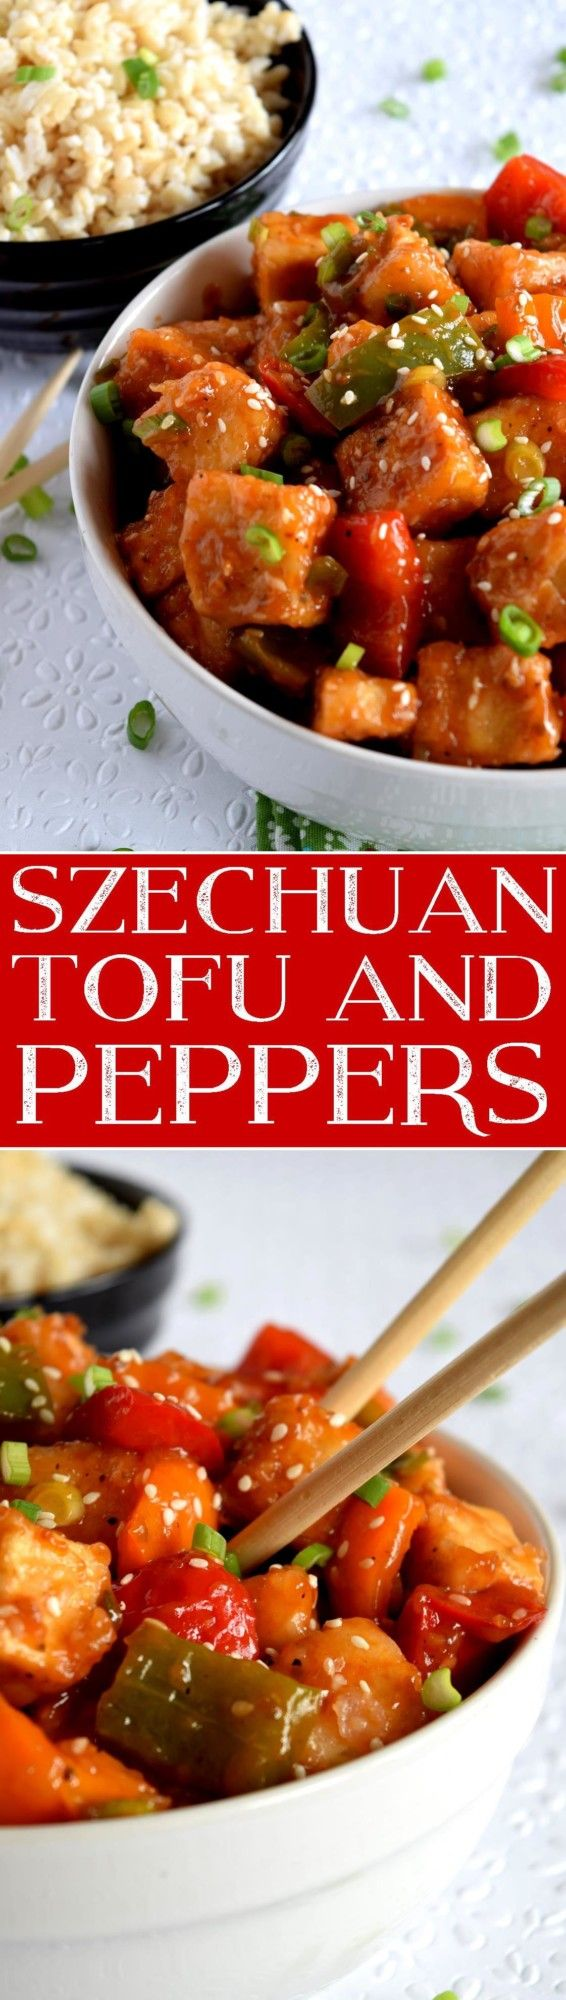 Szechuan Tofu and Peppers - Lord Byron's Kitchen